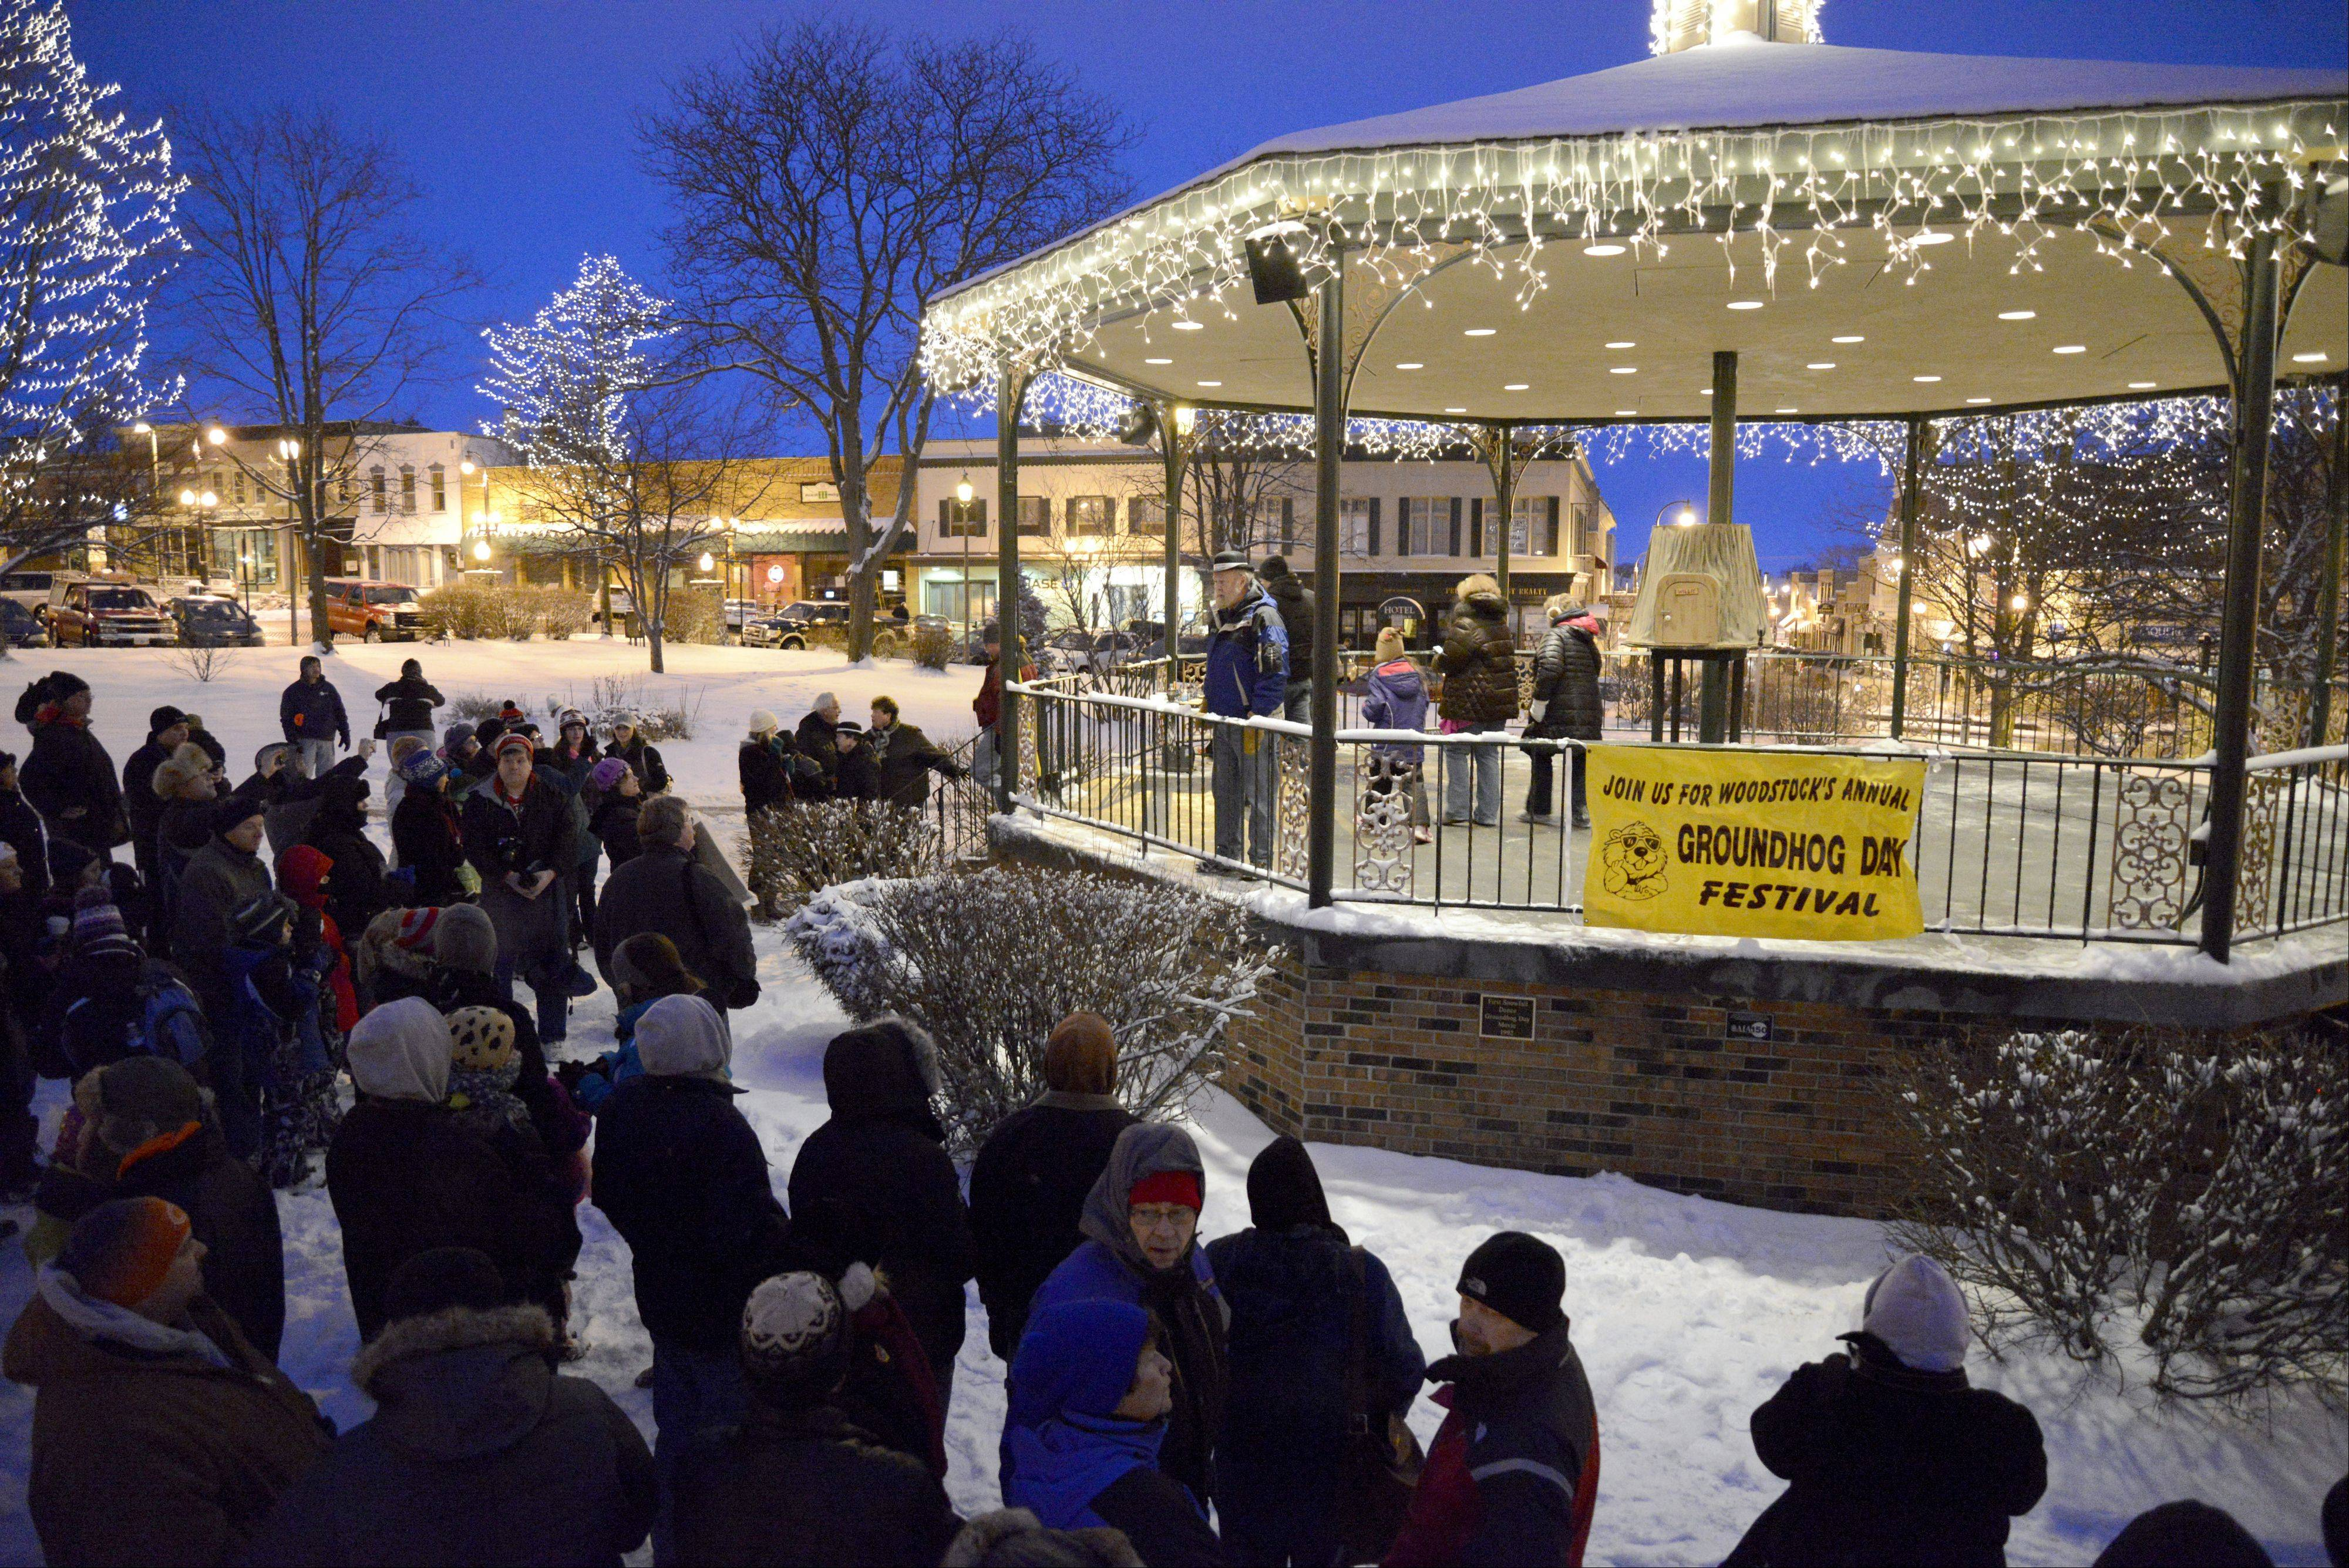 "Crowds start to gather before 6:30 a.m. at the Woodstock Square gazebo on Groundhog Day. The city is also celebrating the 20th anniversary of the filming of the movie ""Groundhog Day"" starring Bill Murray."